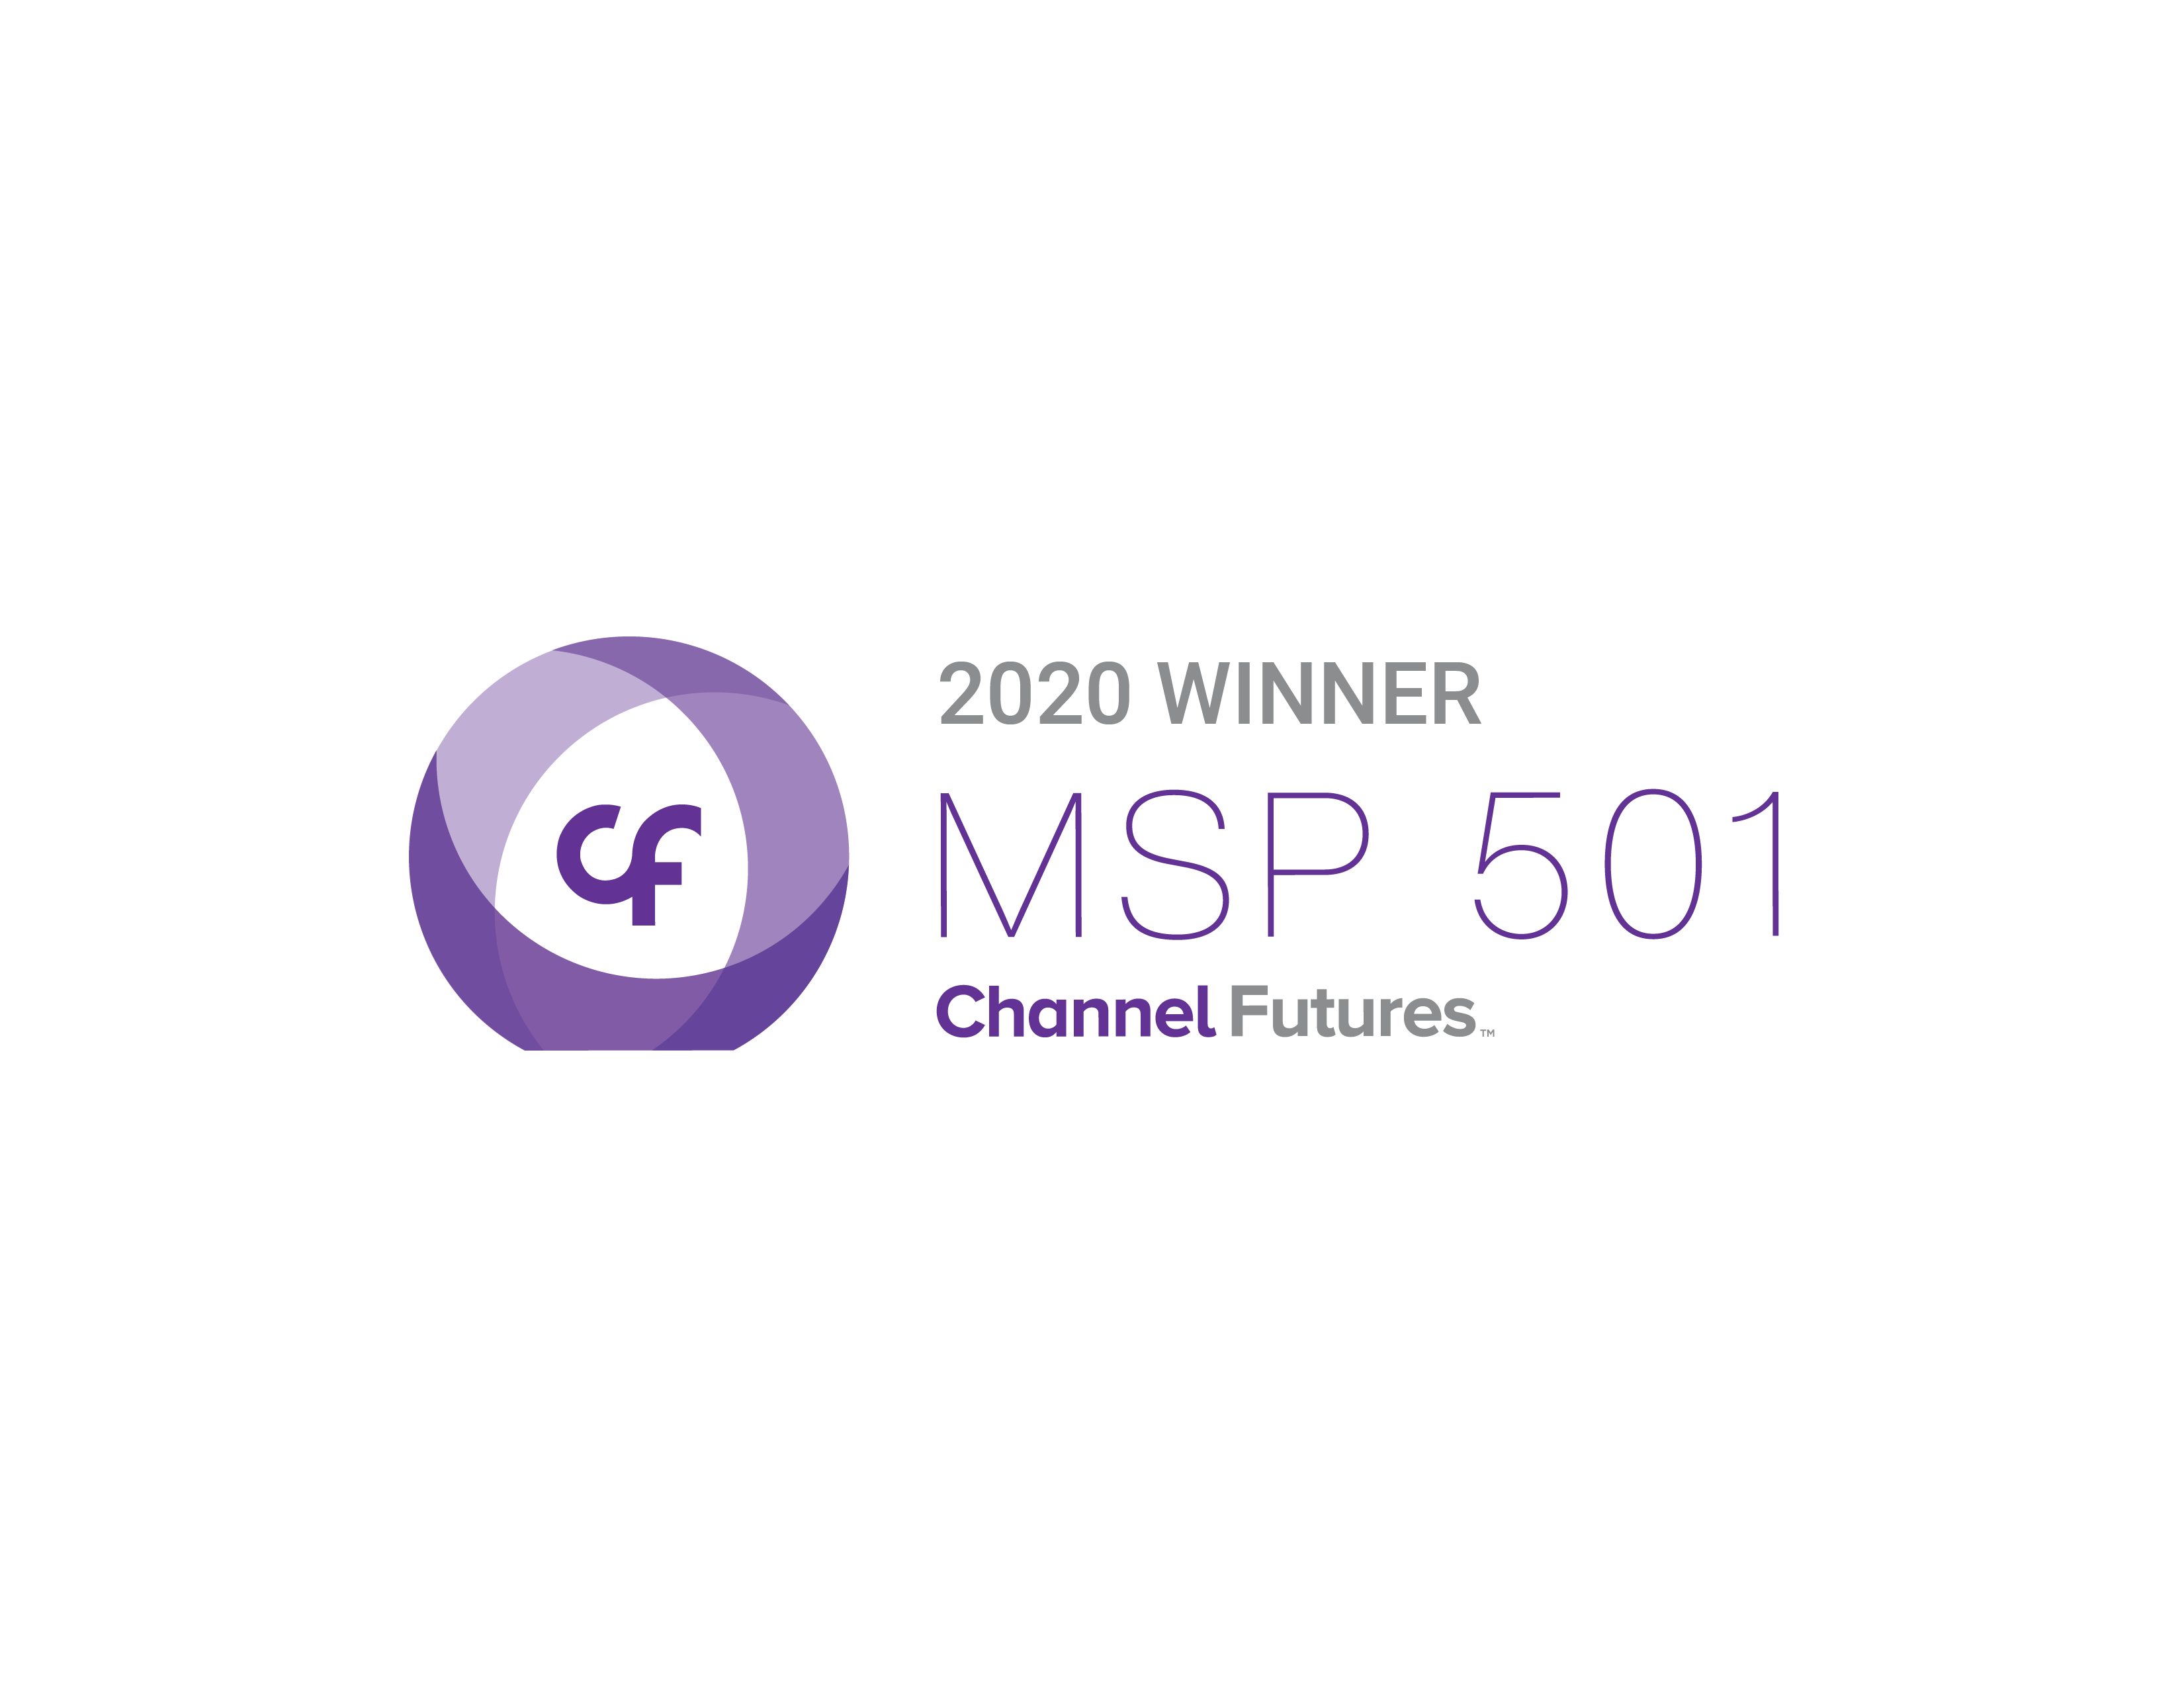 PennComp Ranked Among World's Most Elite 501 Managed Service Providers